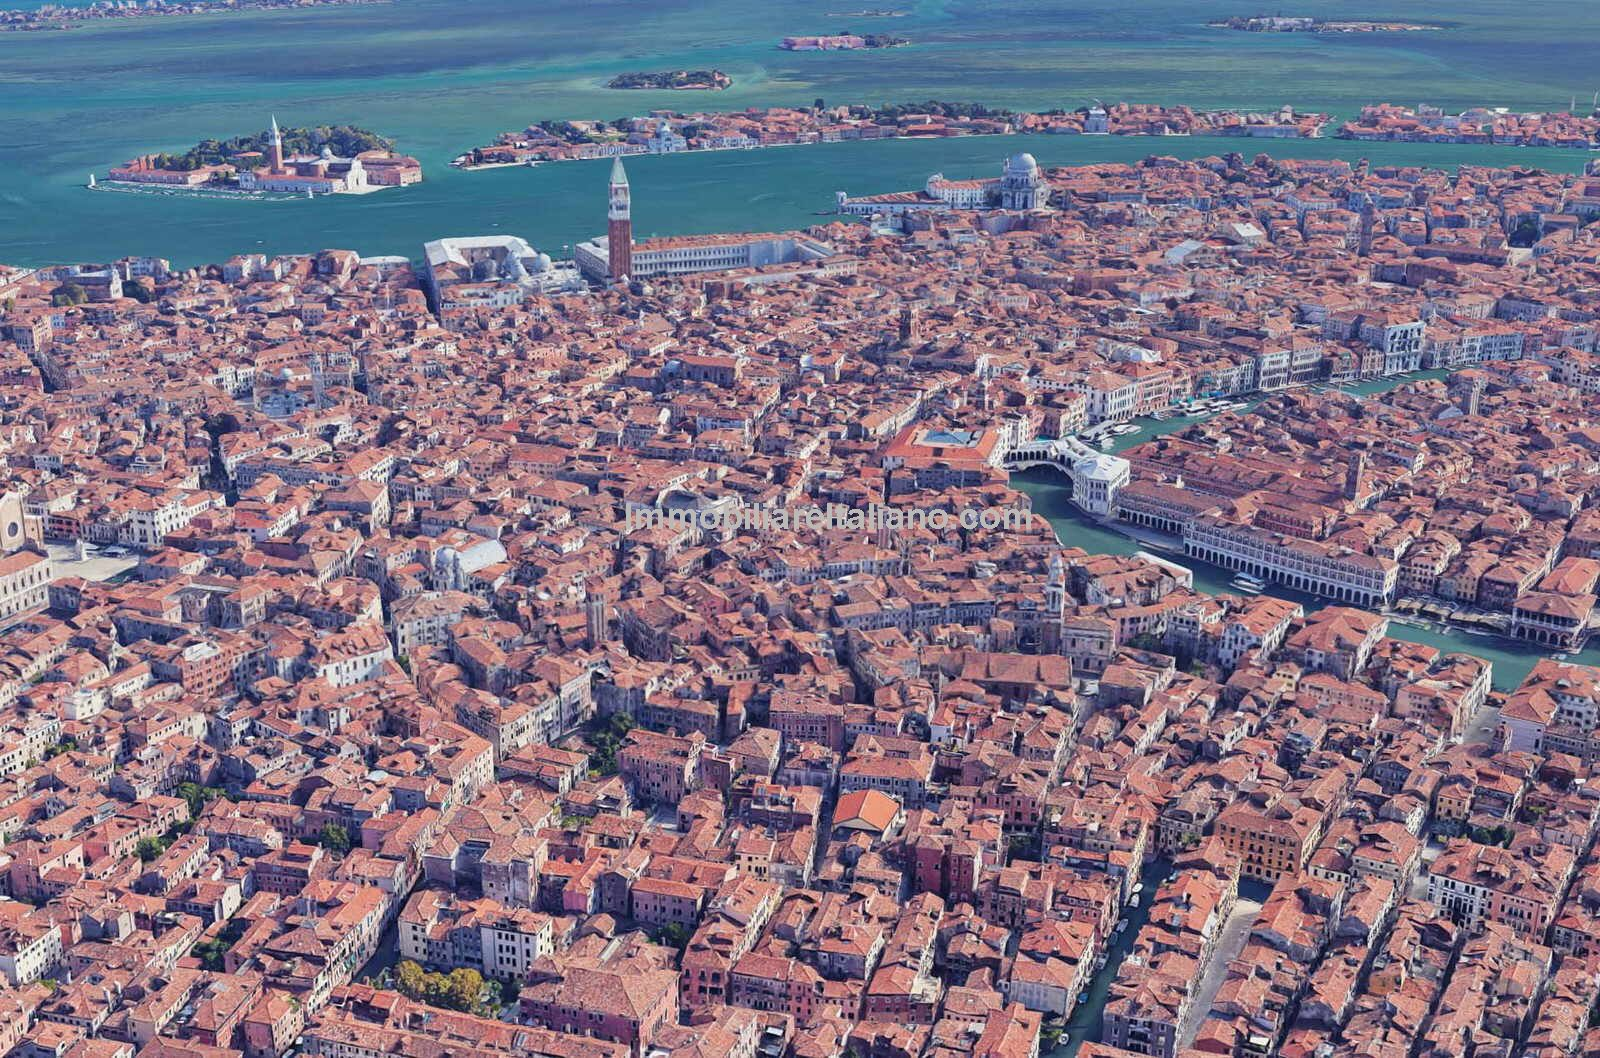 Aerial view showing location of Luxury Venetian apartment